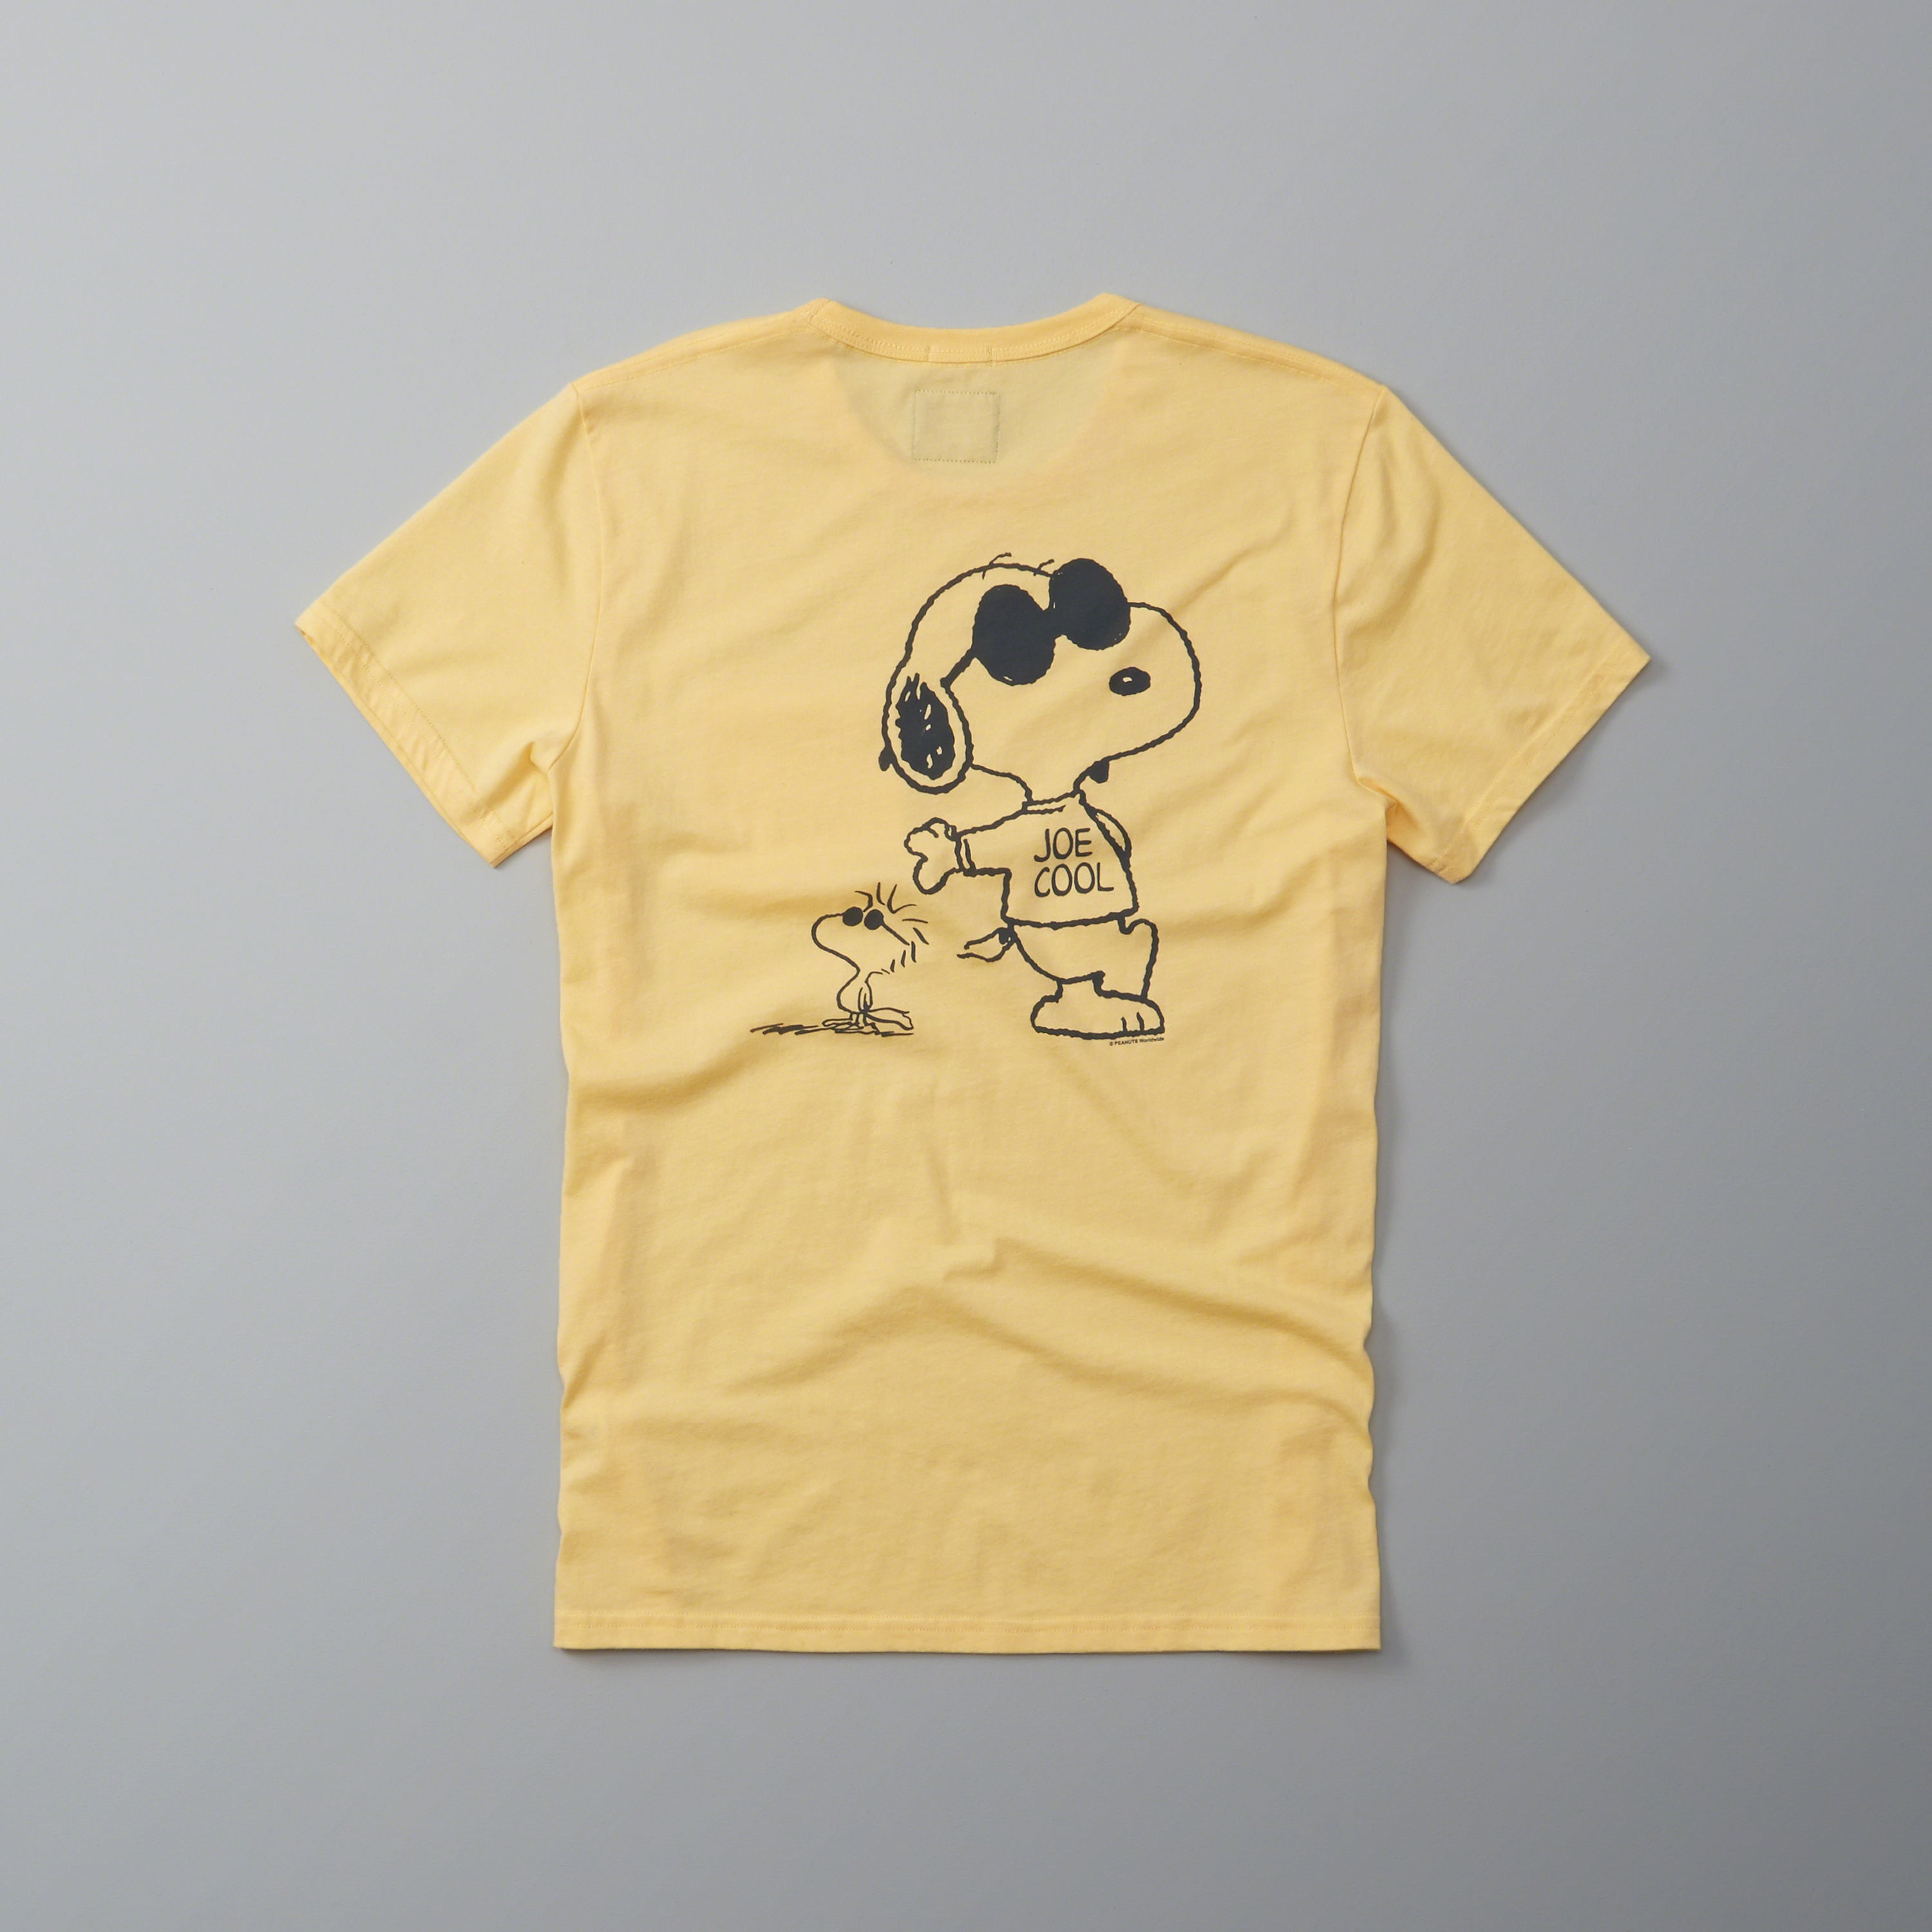 Lyst abercrombie fitch peanuts graphic tee in yellow for Abercrombie and fitch tee shirts